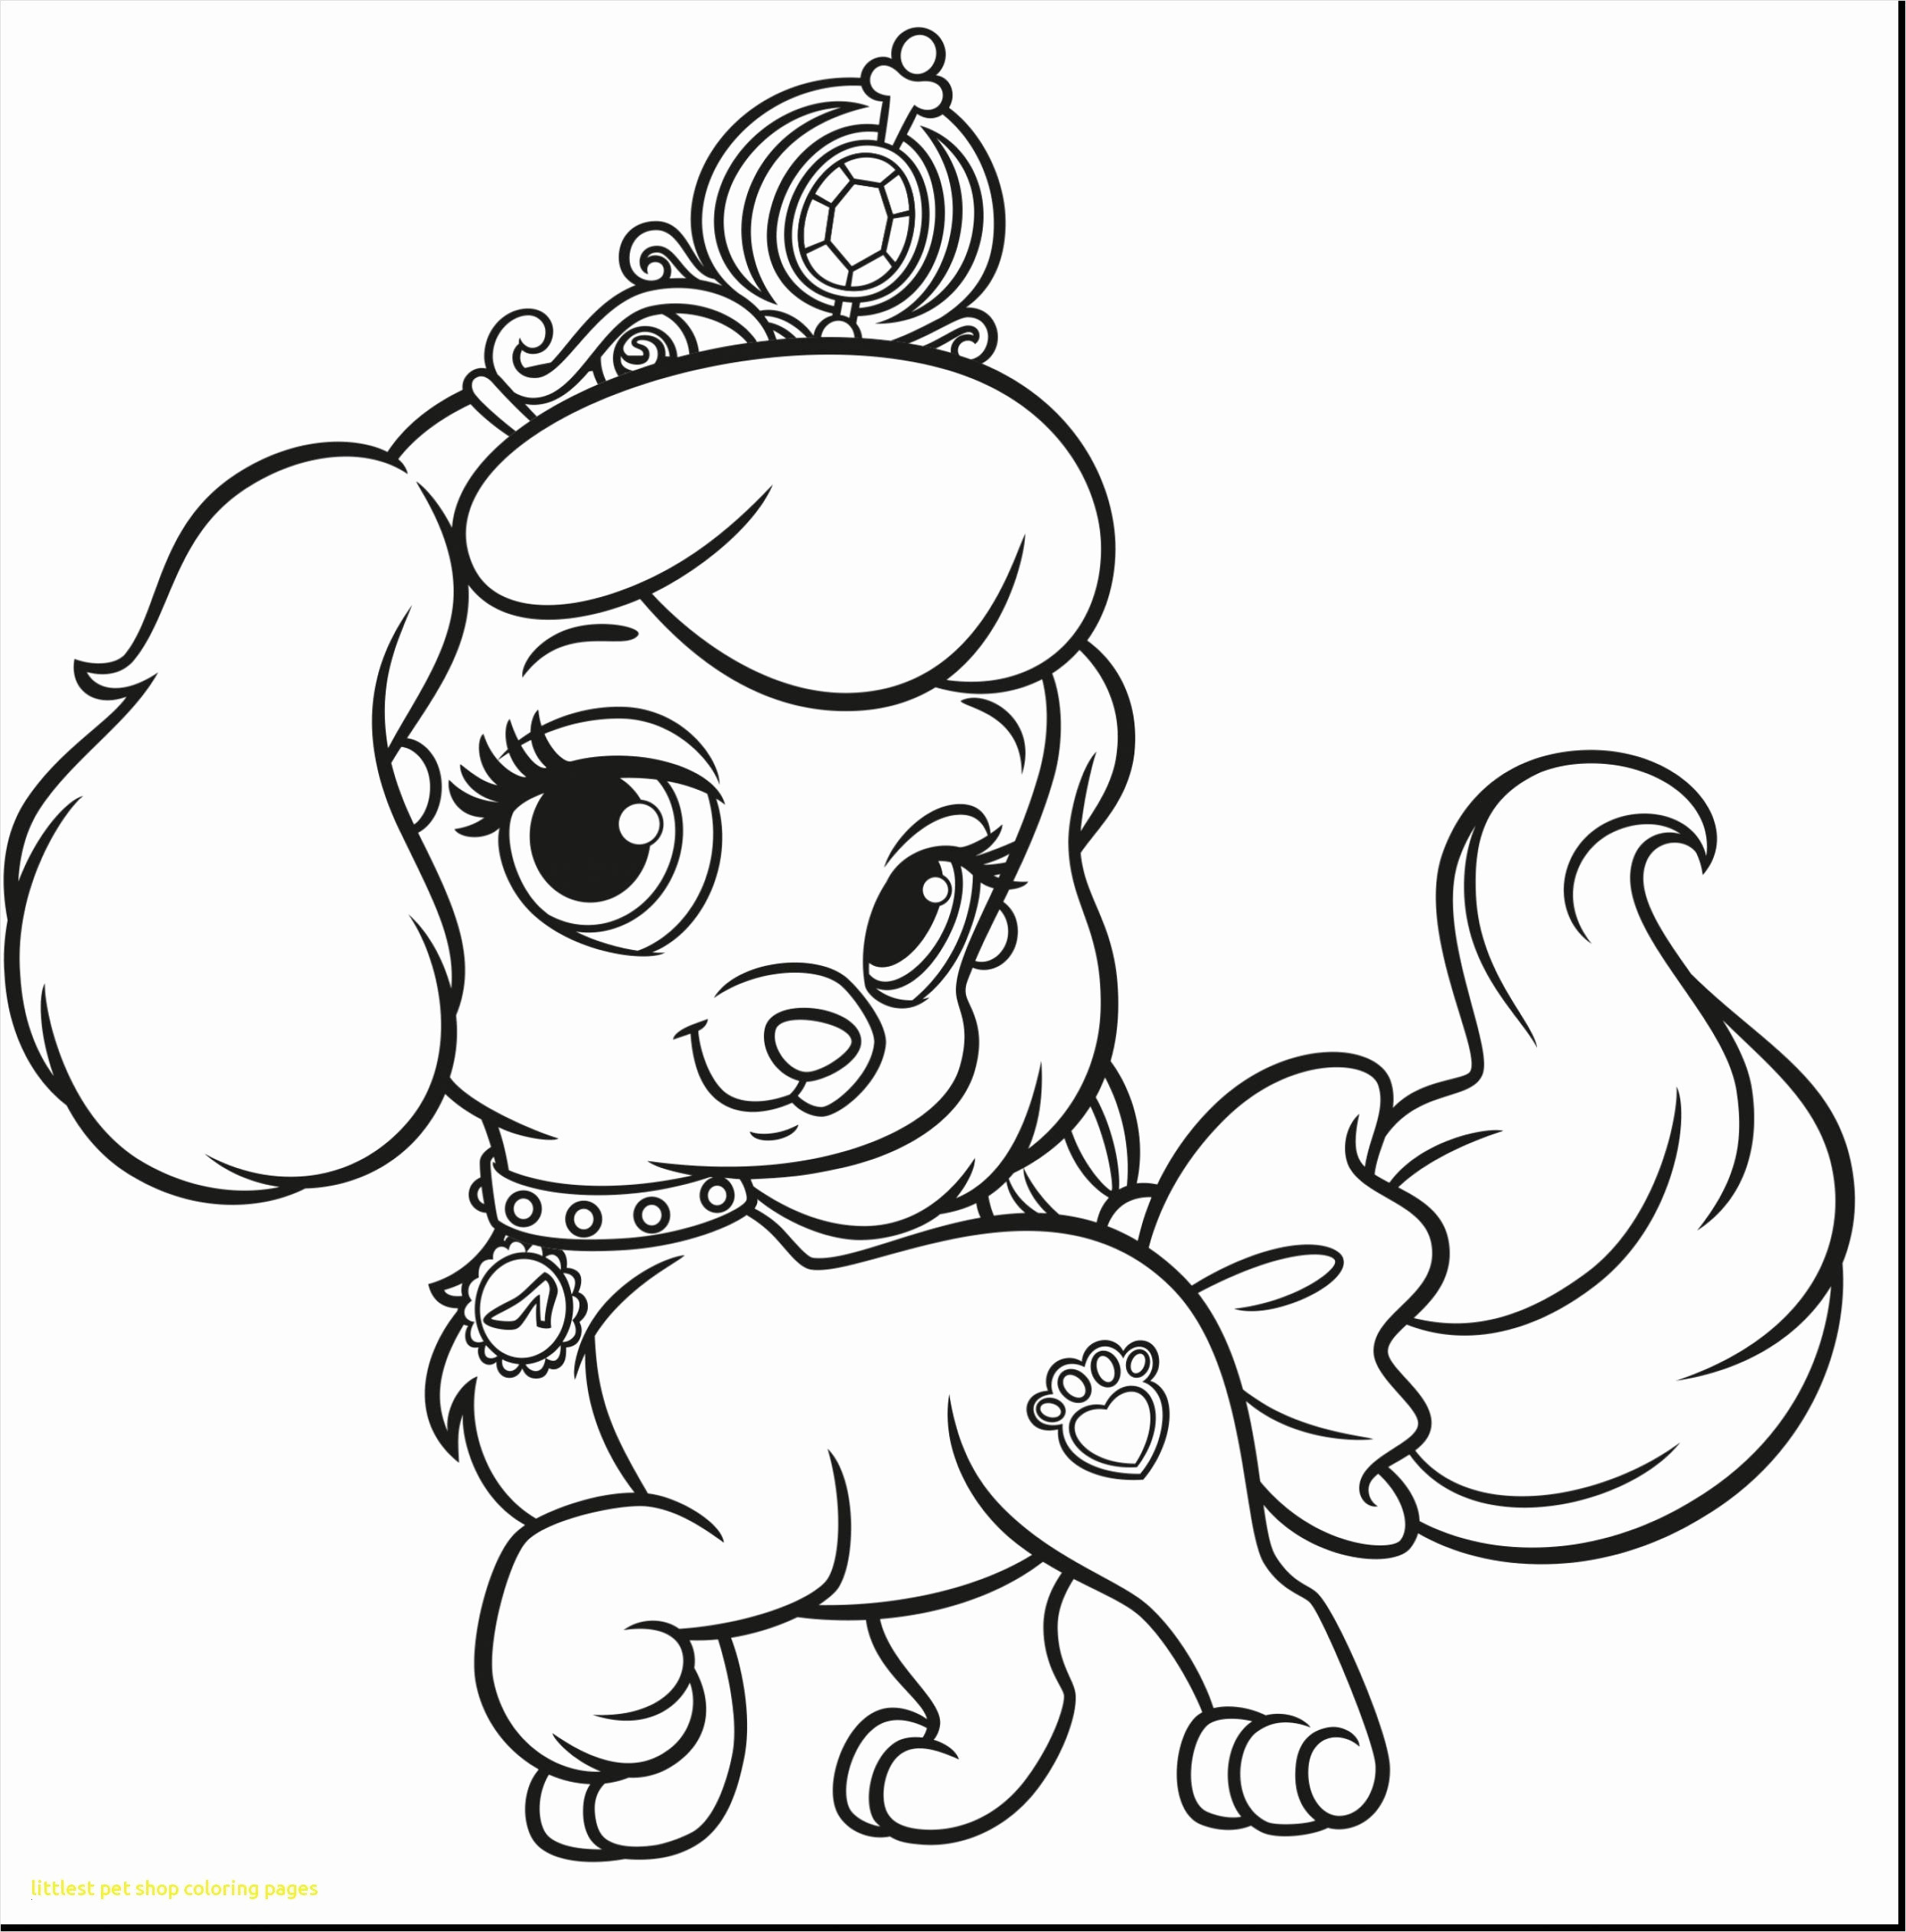 Diwali Coloring Pages Download